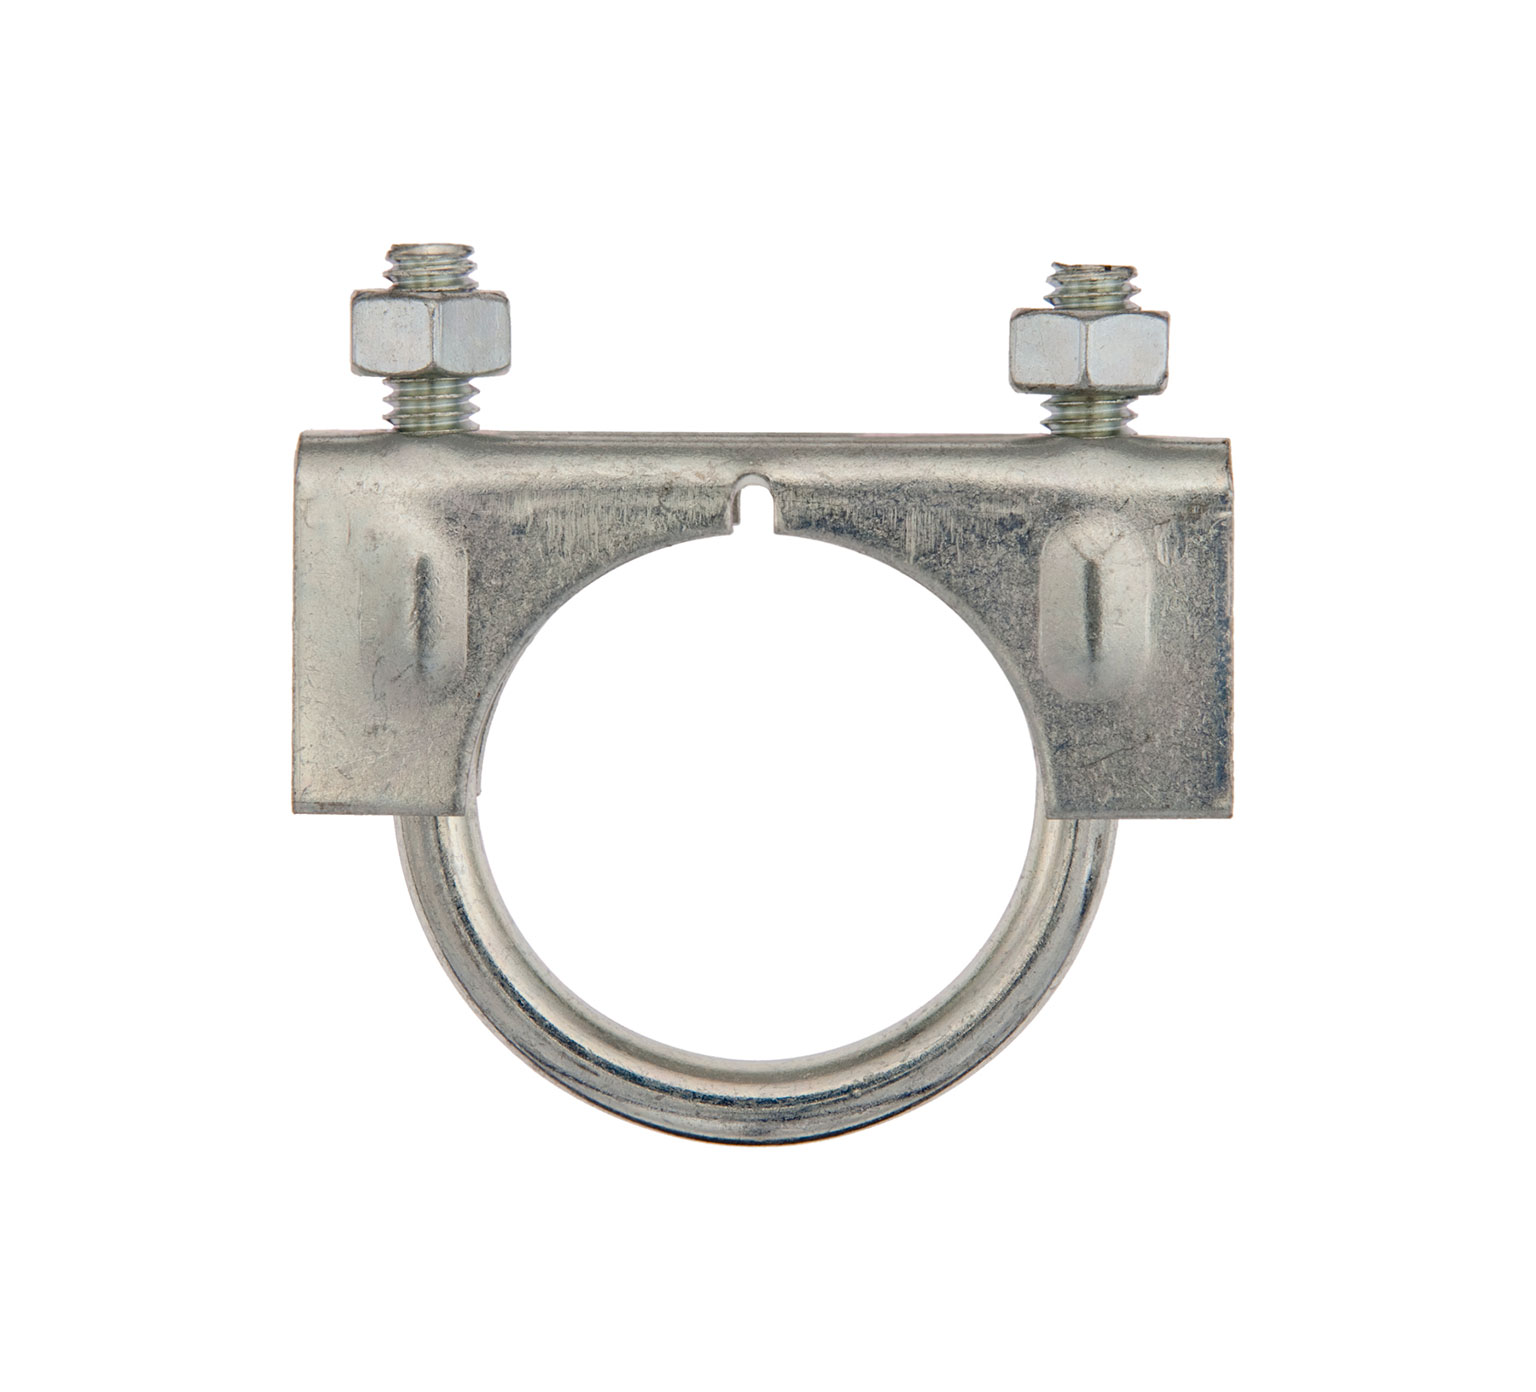 24012 Steel Muffler Clamp - 2.88 x 0.59 x 1.321 x 0.885 in ID alt 1